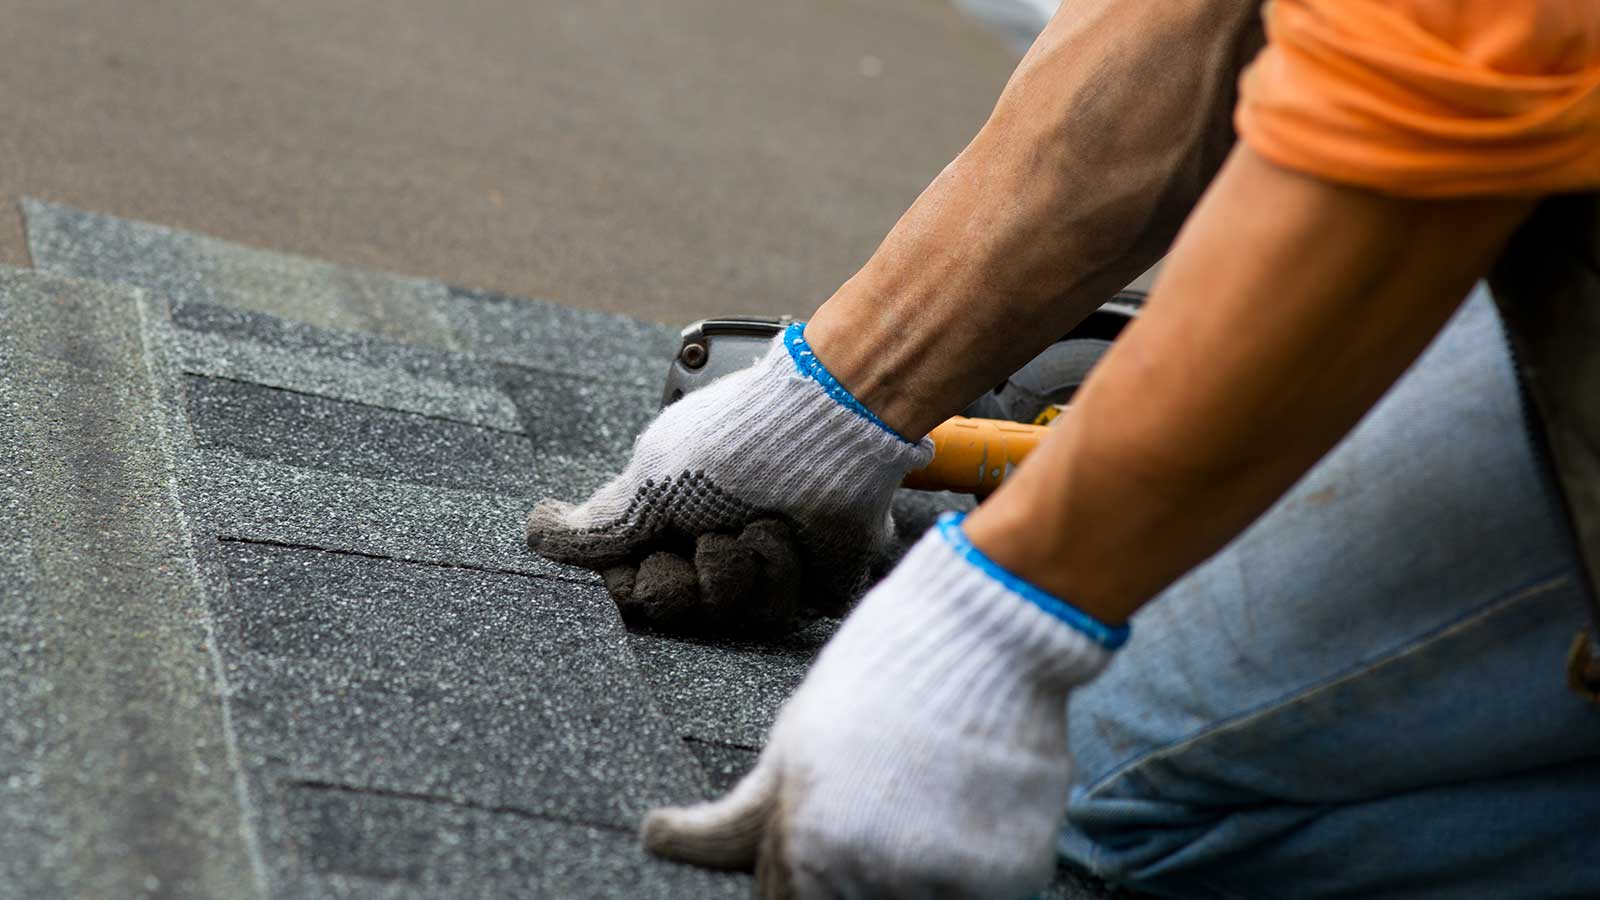 Re-roofing specialists maple ridge vancouver